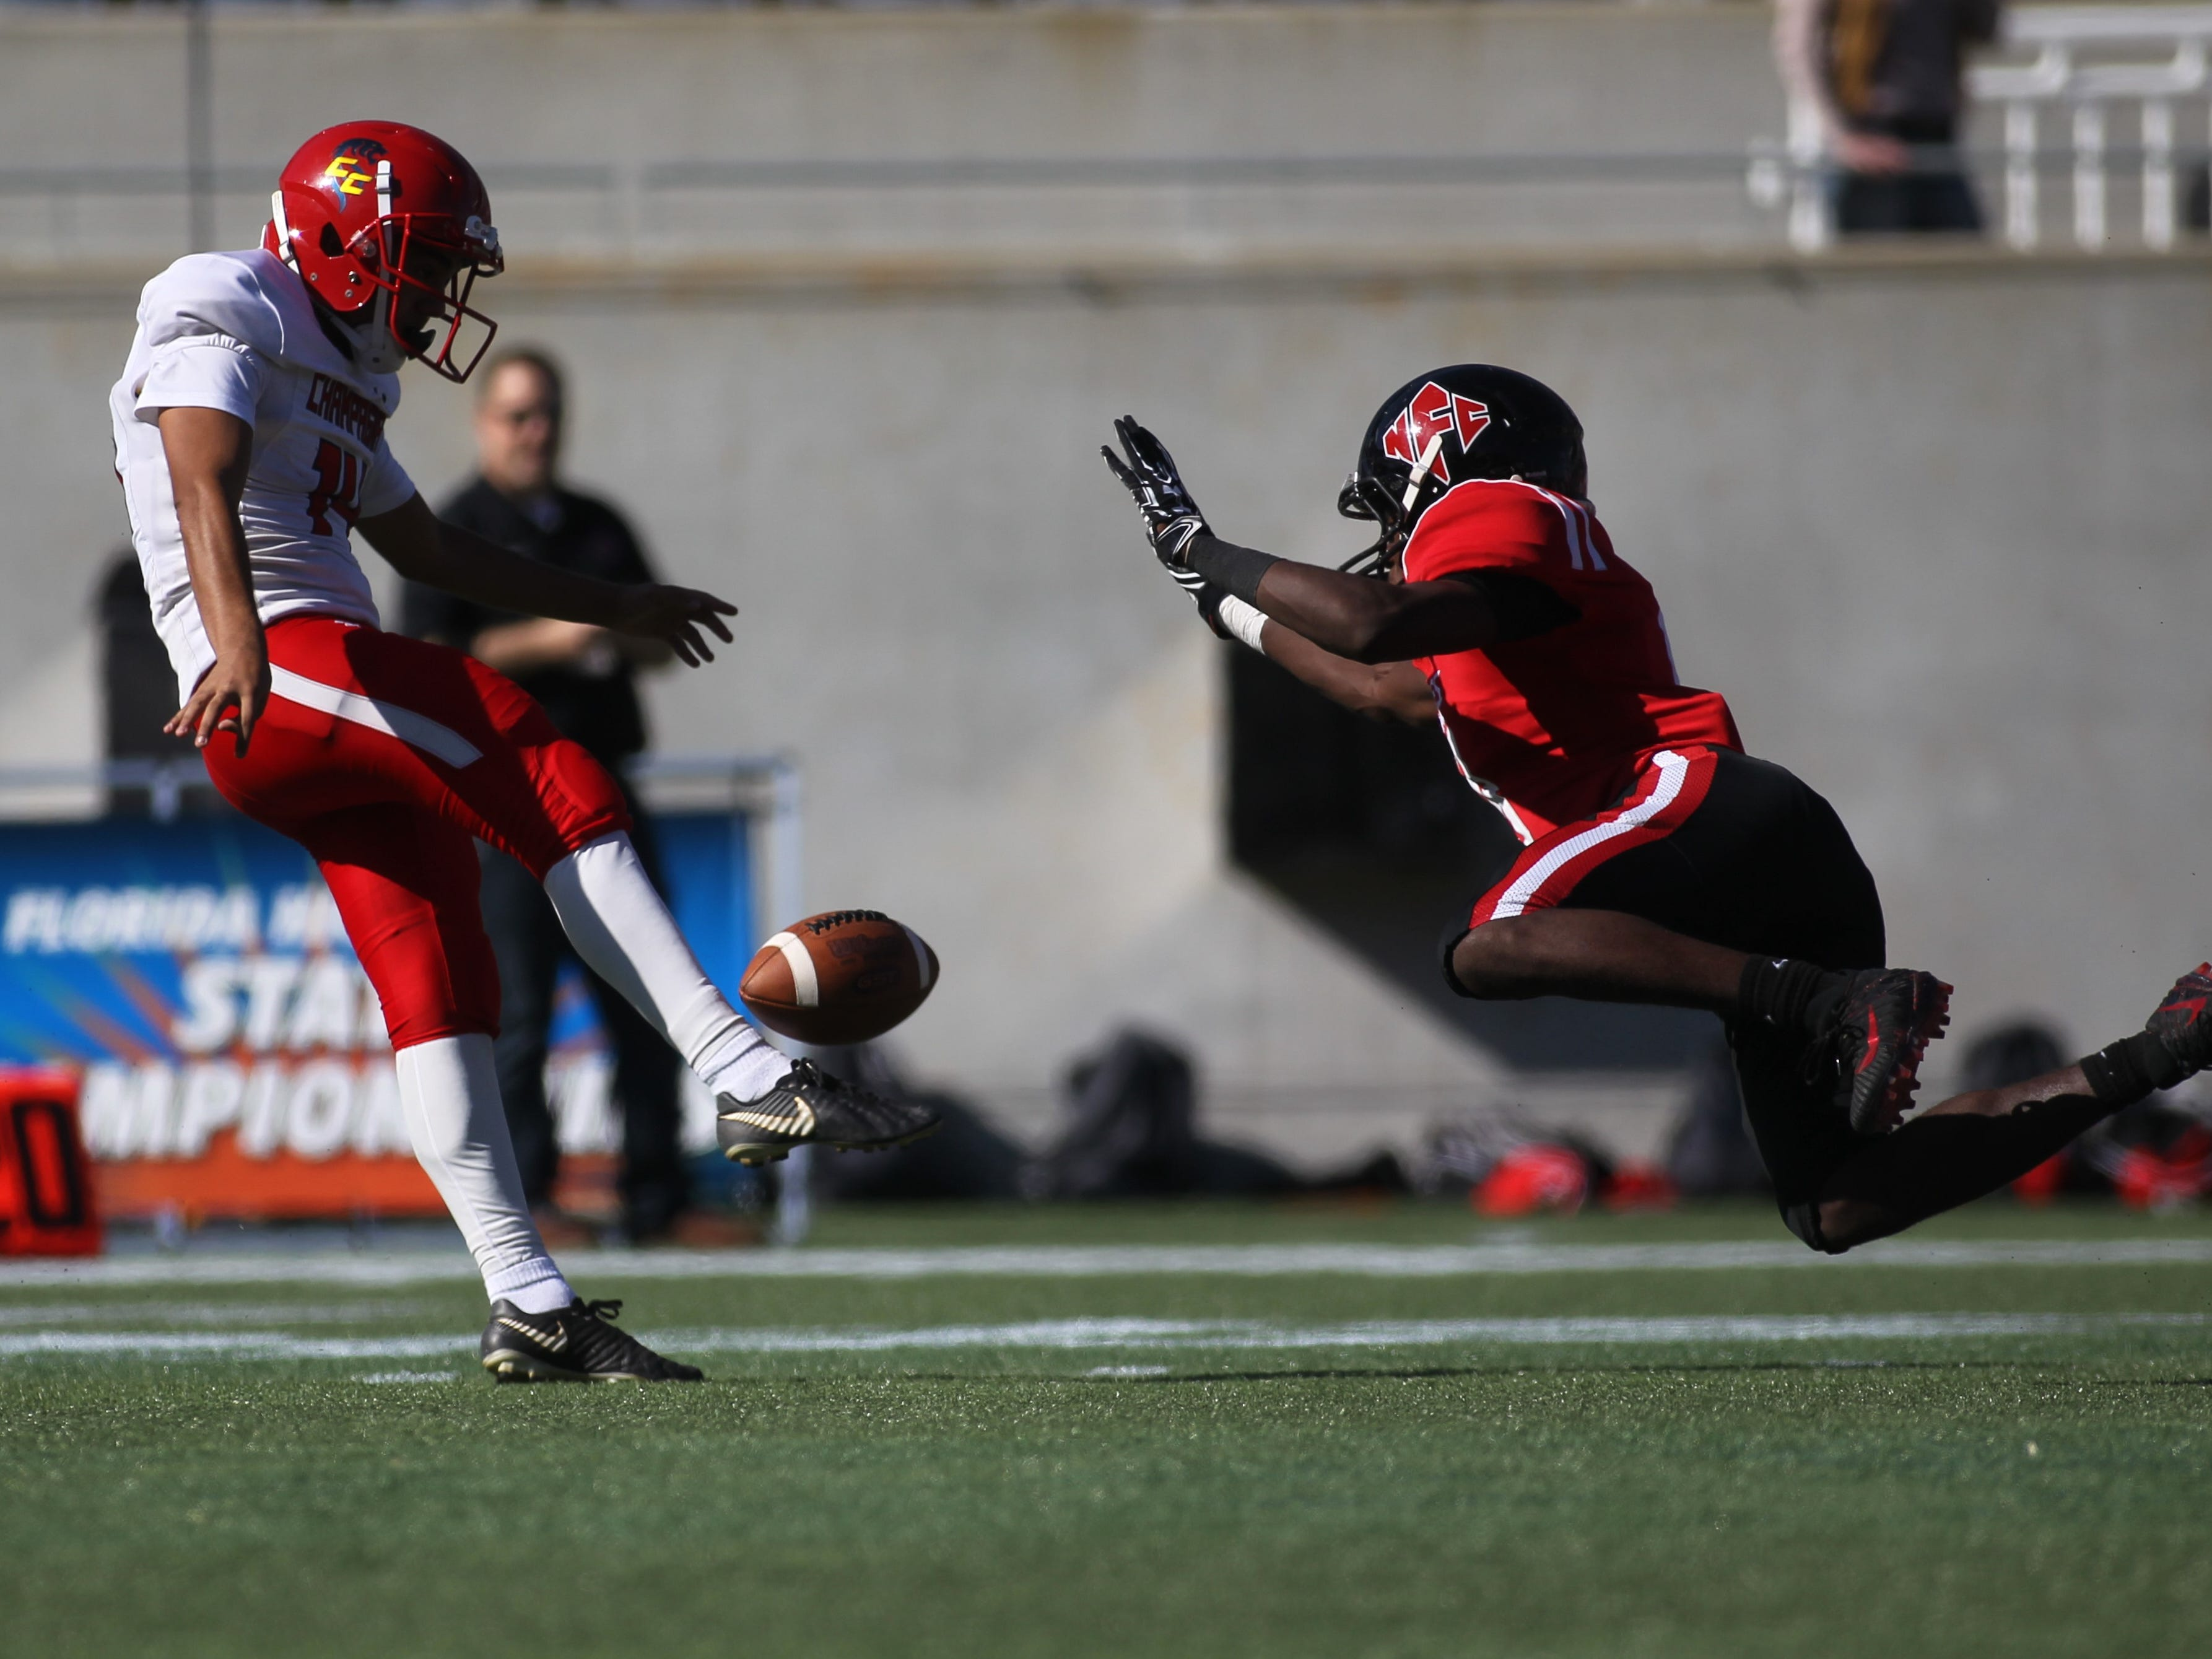 North Florida Christian's Deandrae McCray lays out to block a Champagnat Catholic punt during the Class 2A state championship game on Dec. 7, 2018. McCray tipped the punt, and the Eagles won 28-20 to capture the program's eighth state title.